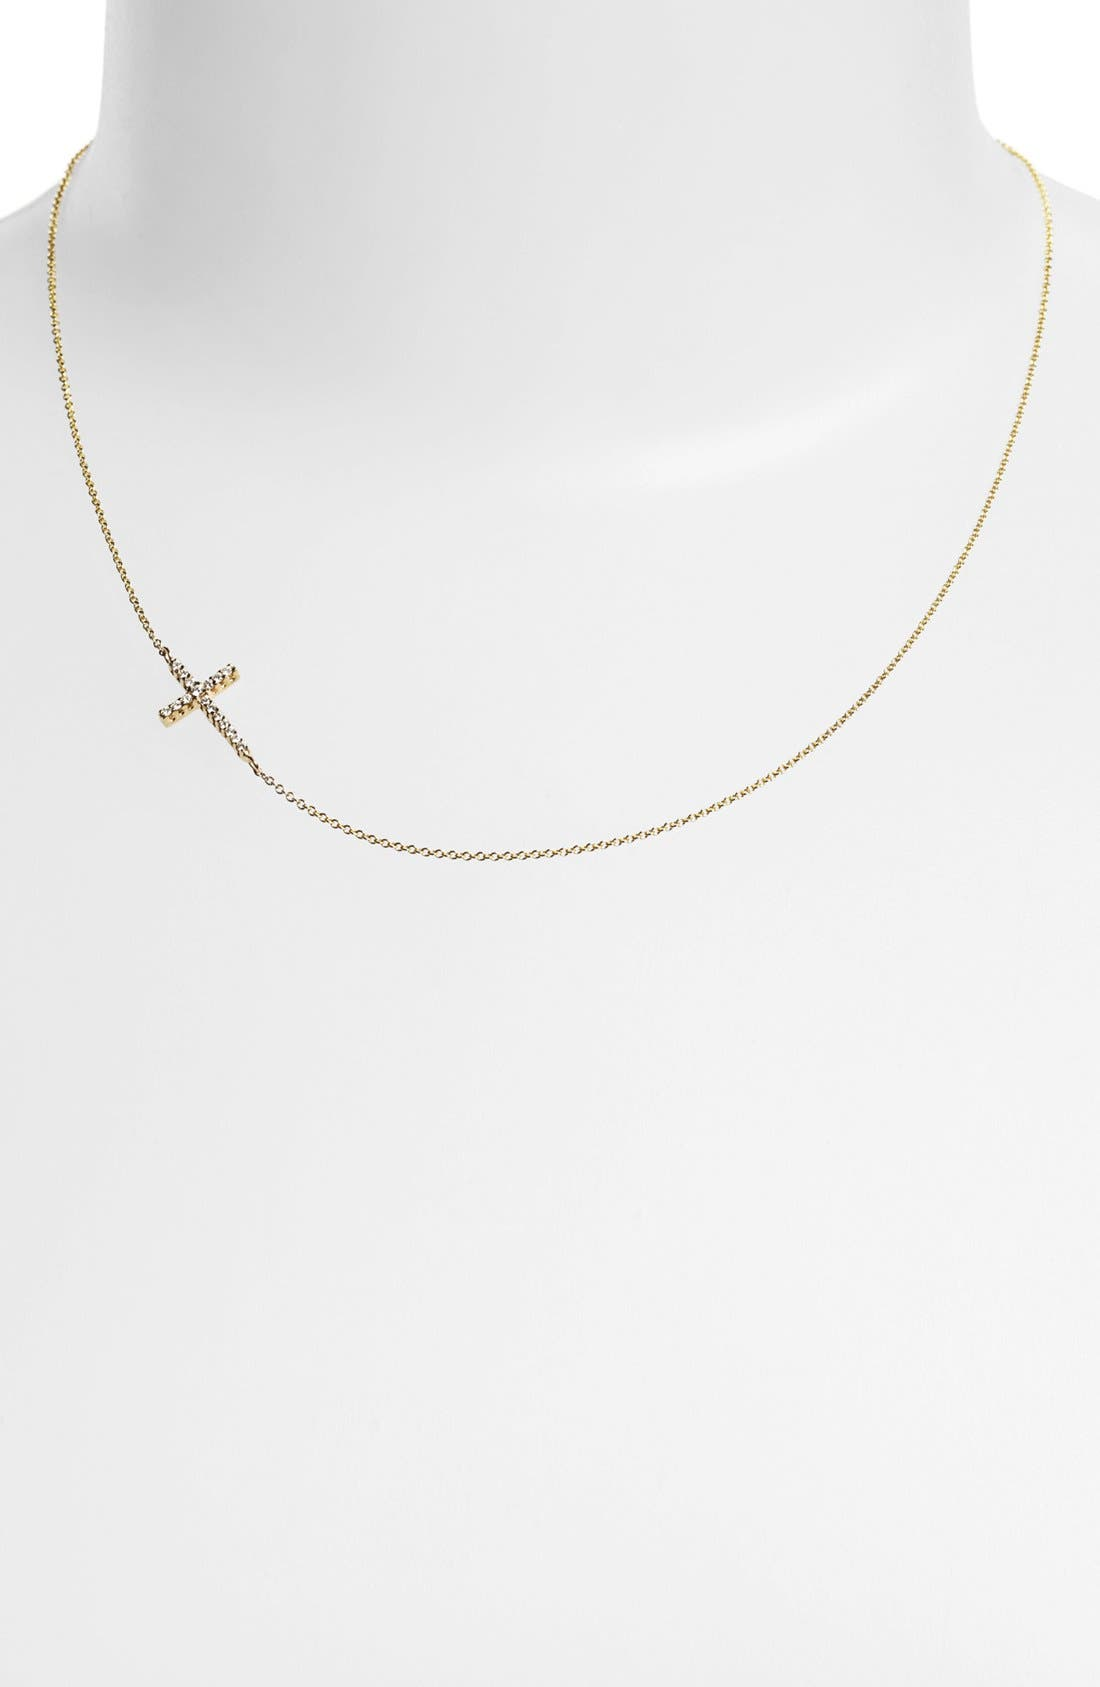 Main Image - Mizuki Diamond Cross Station Necklace